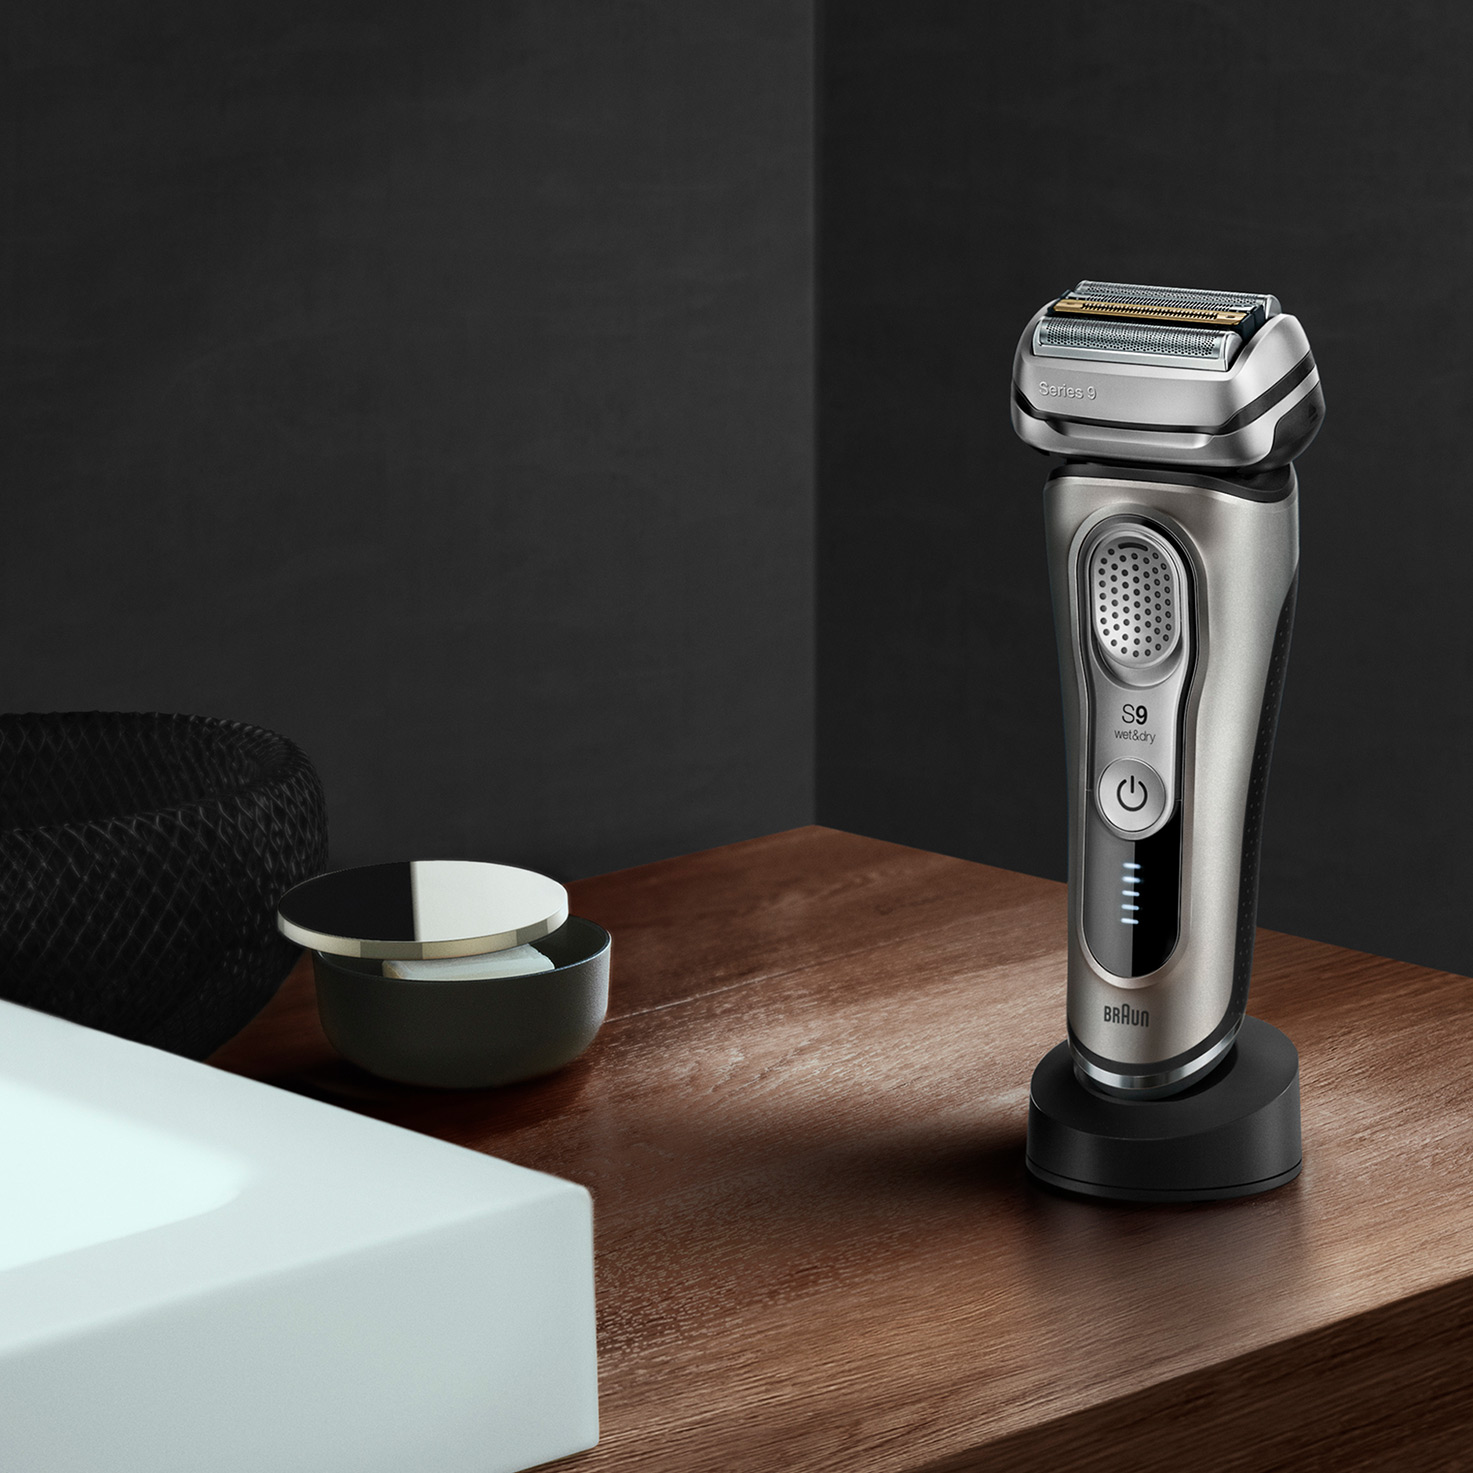 Series 9 9325s shaver in charging stand